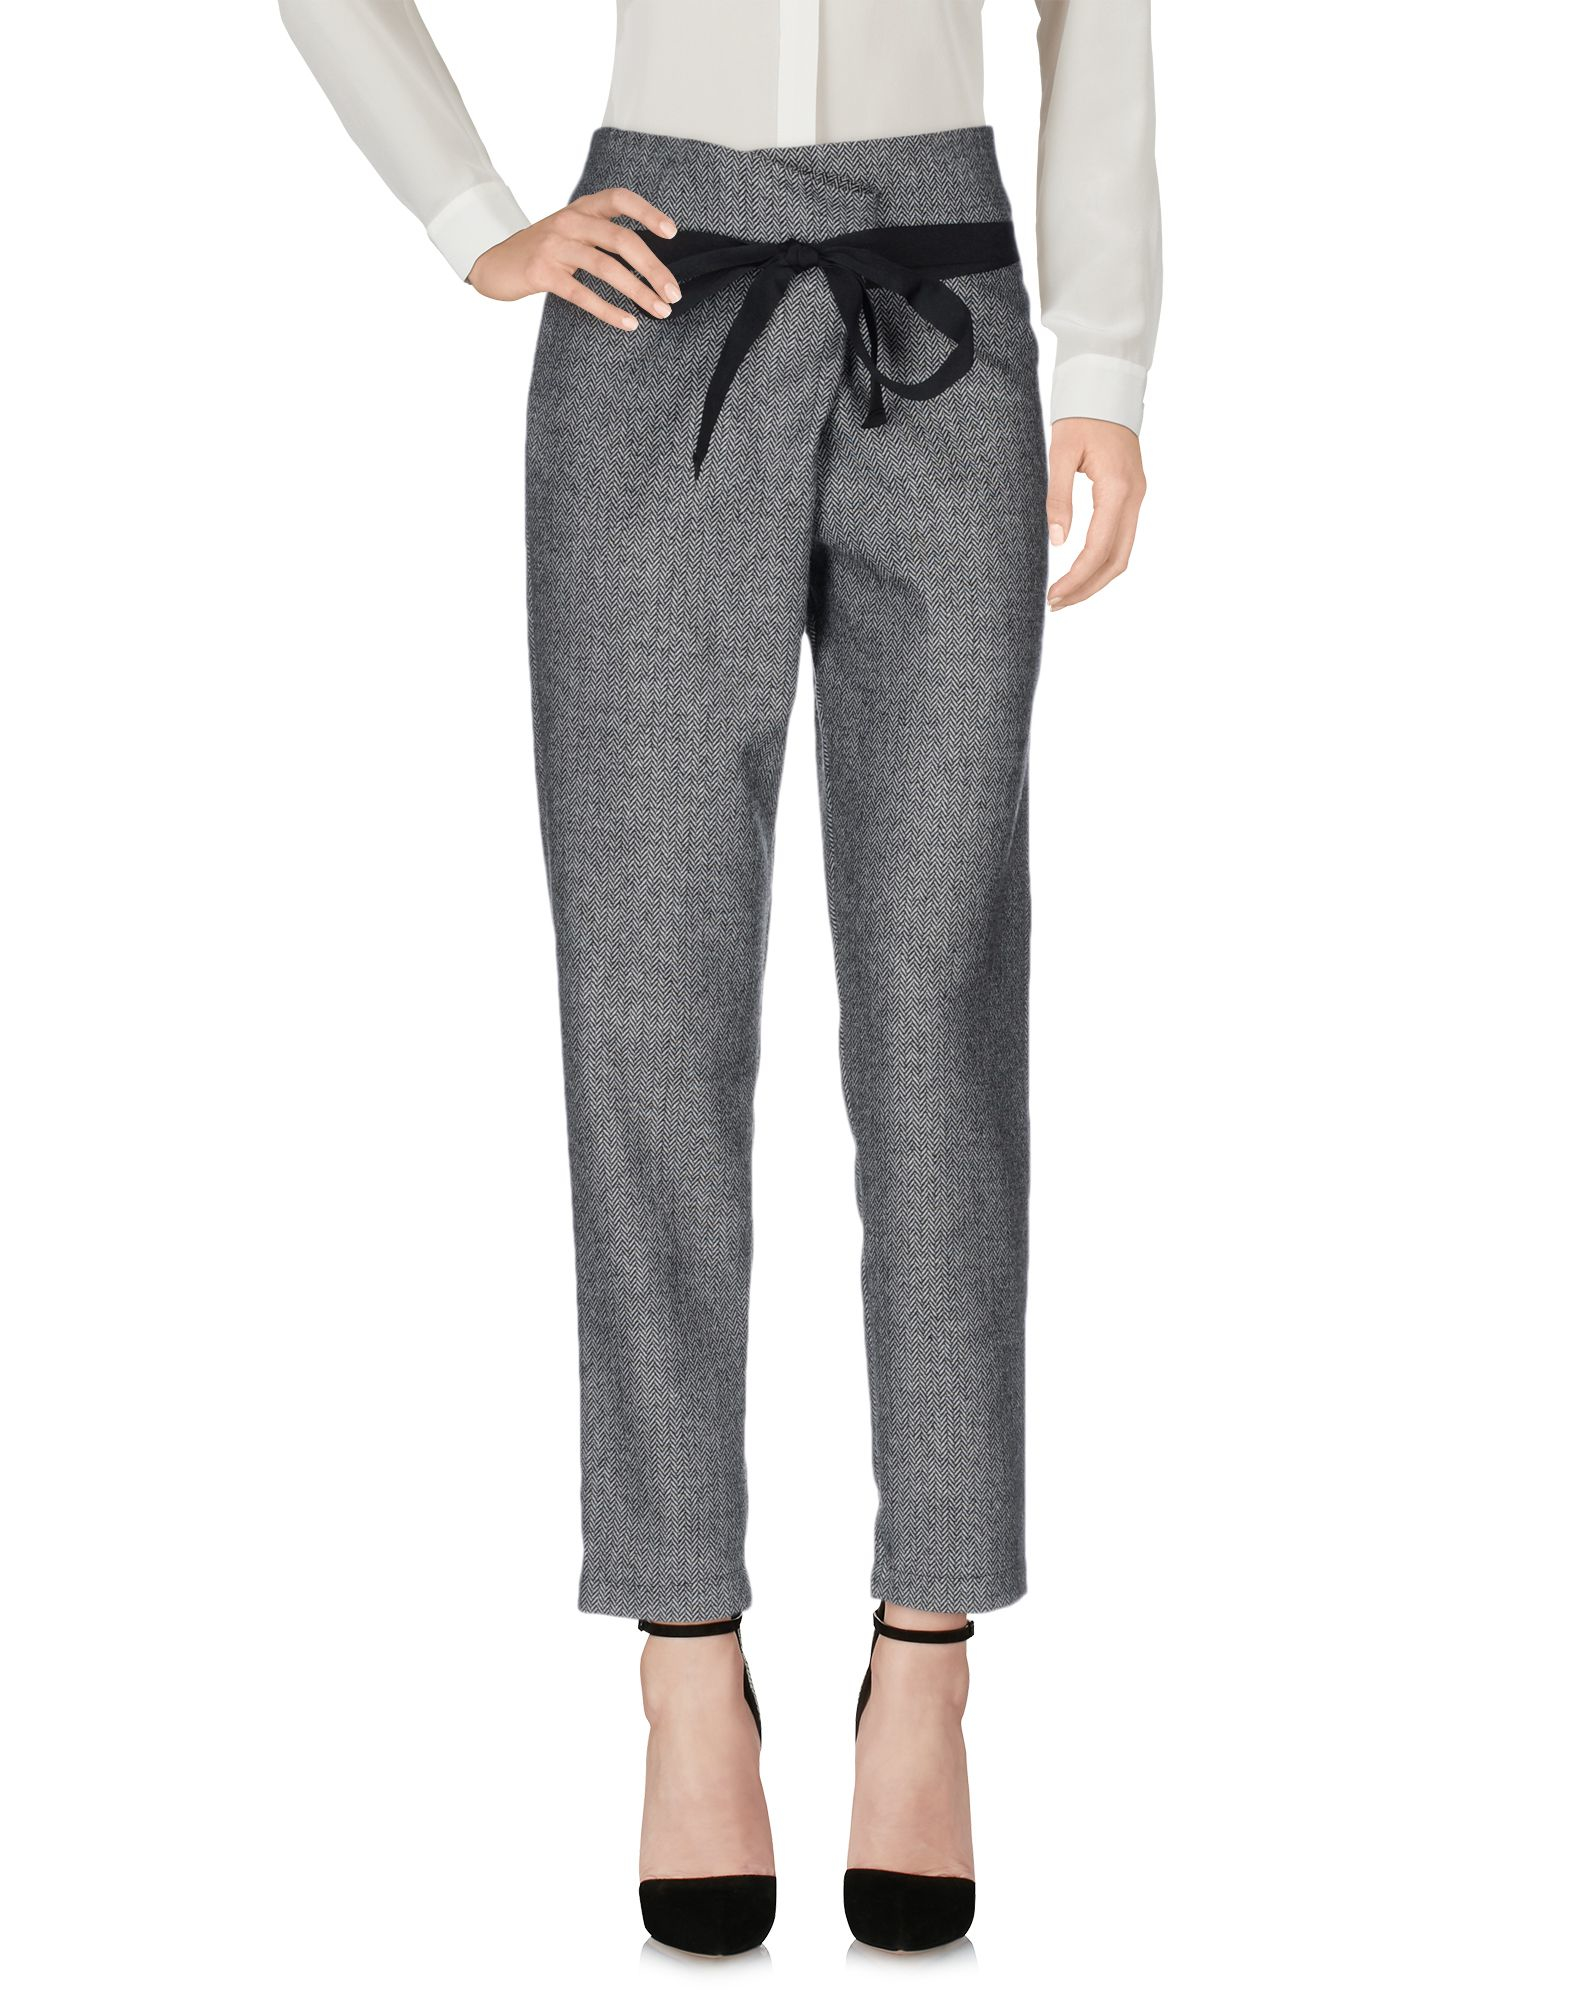 Rolf S Nyc Souvenir Clubbing Casual Trouser In Gray Lyst